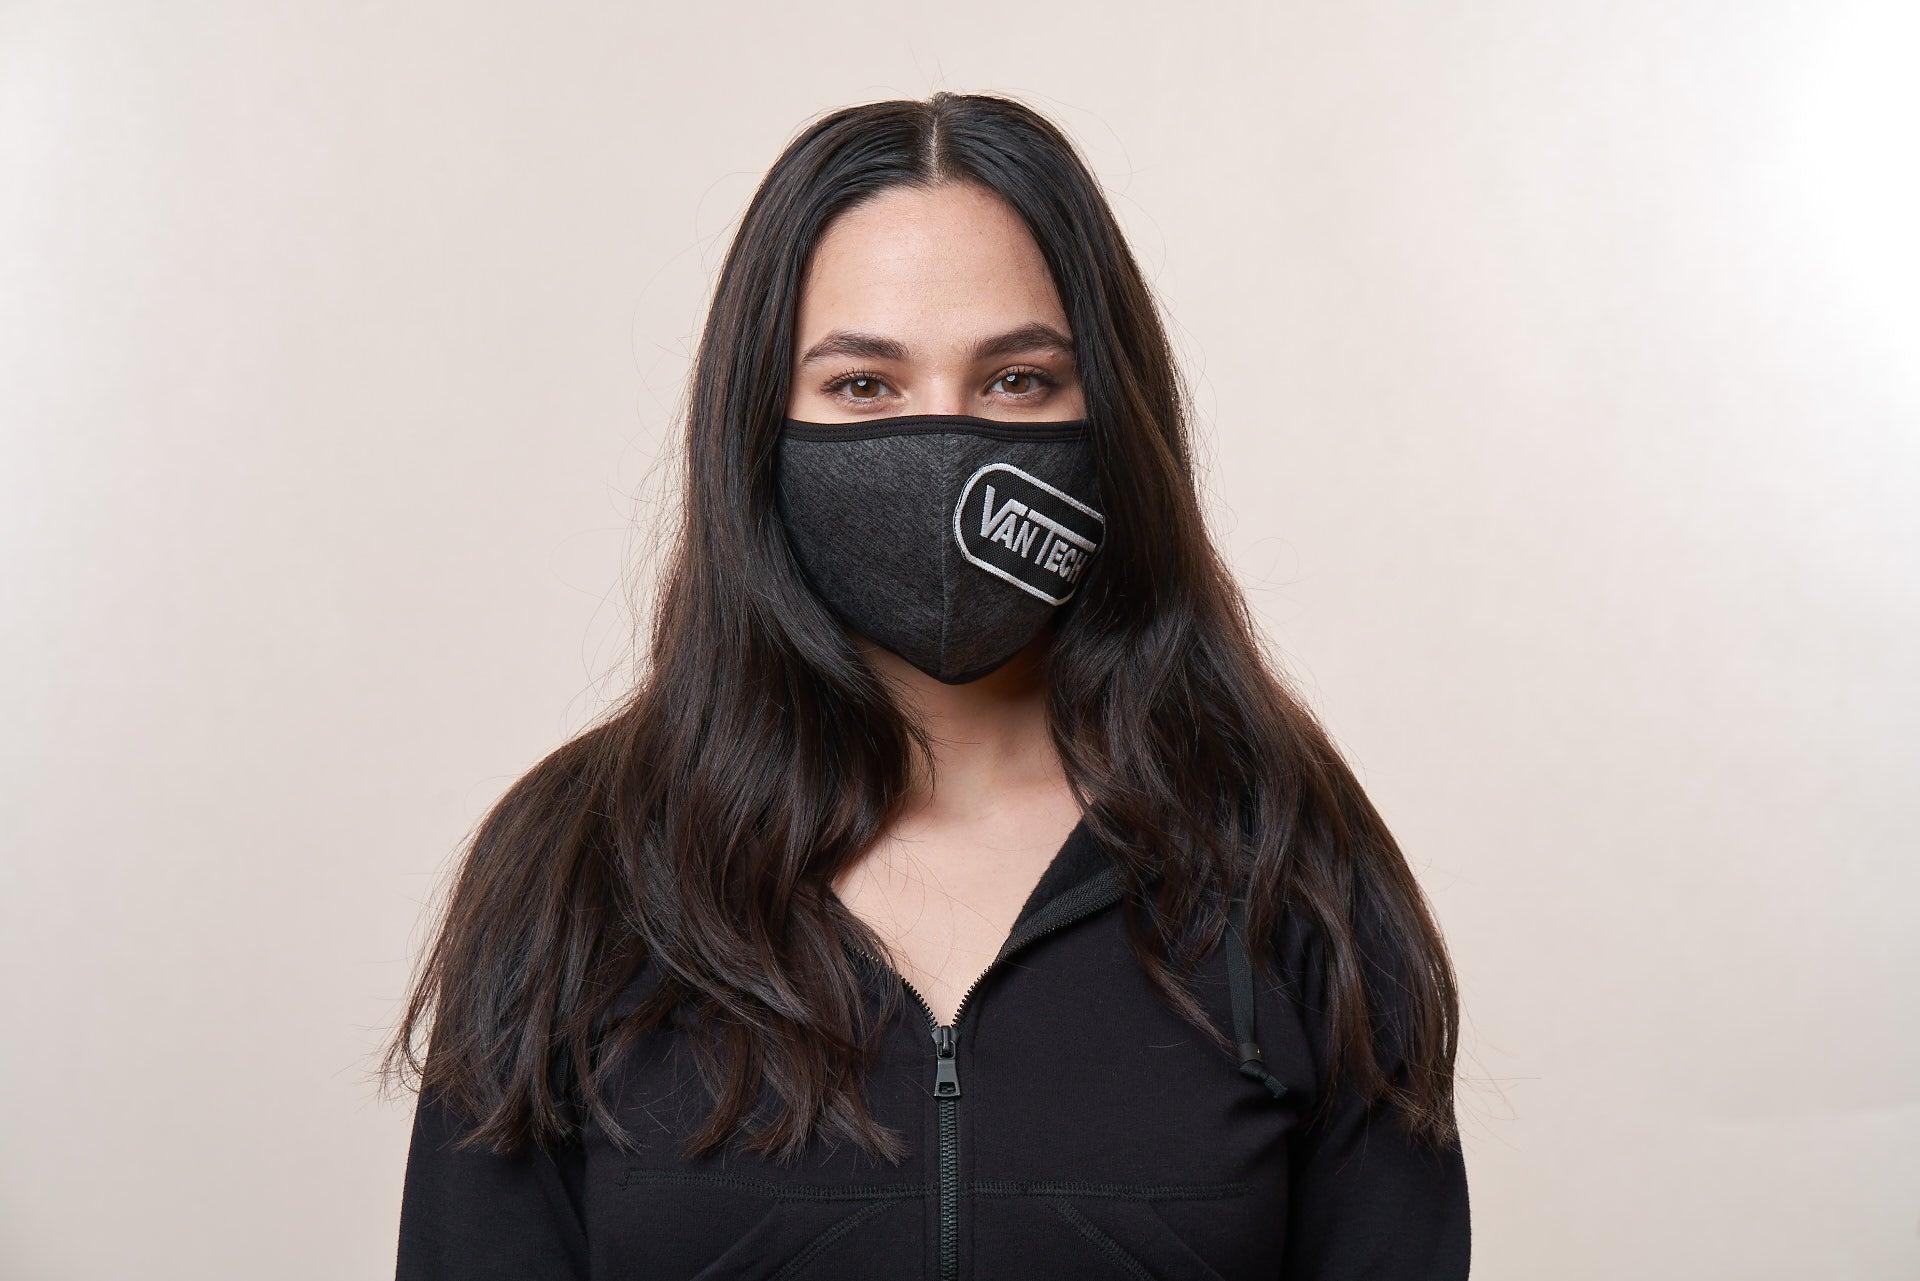 Woman wears a charcoal face mask with a VanTech logo patch on it.